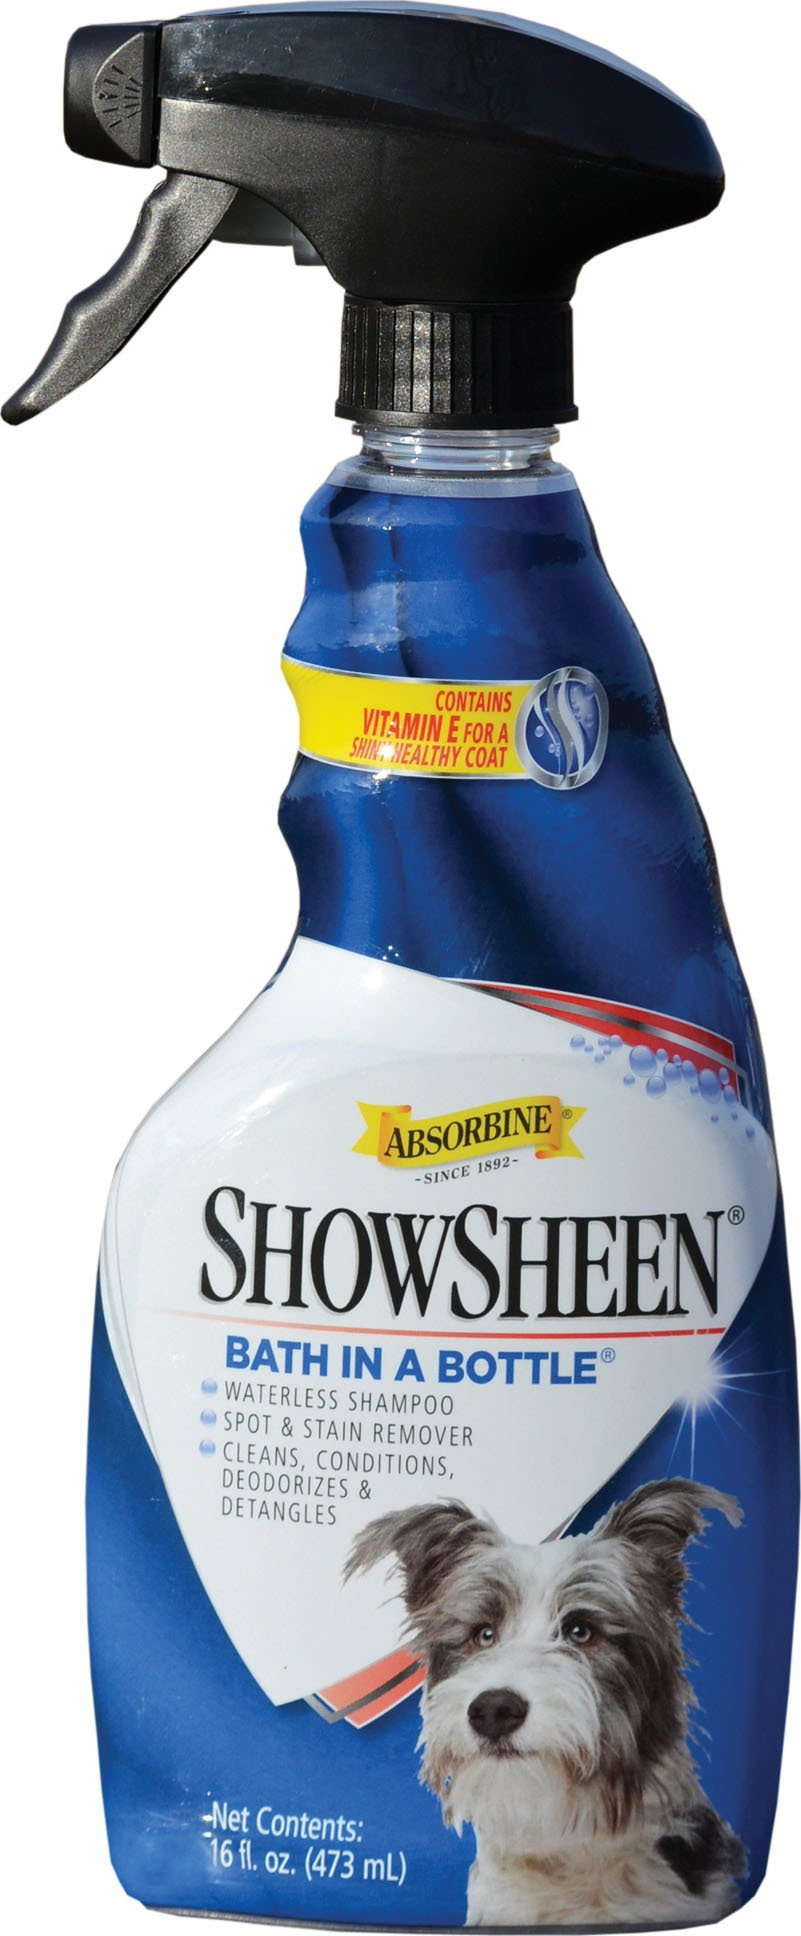 Absorbine ShowSheen Bath in a Bottle for Dogs 16oz